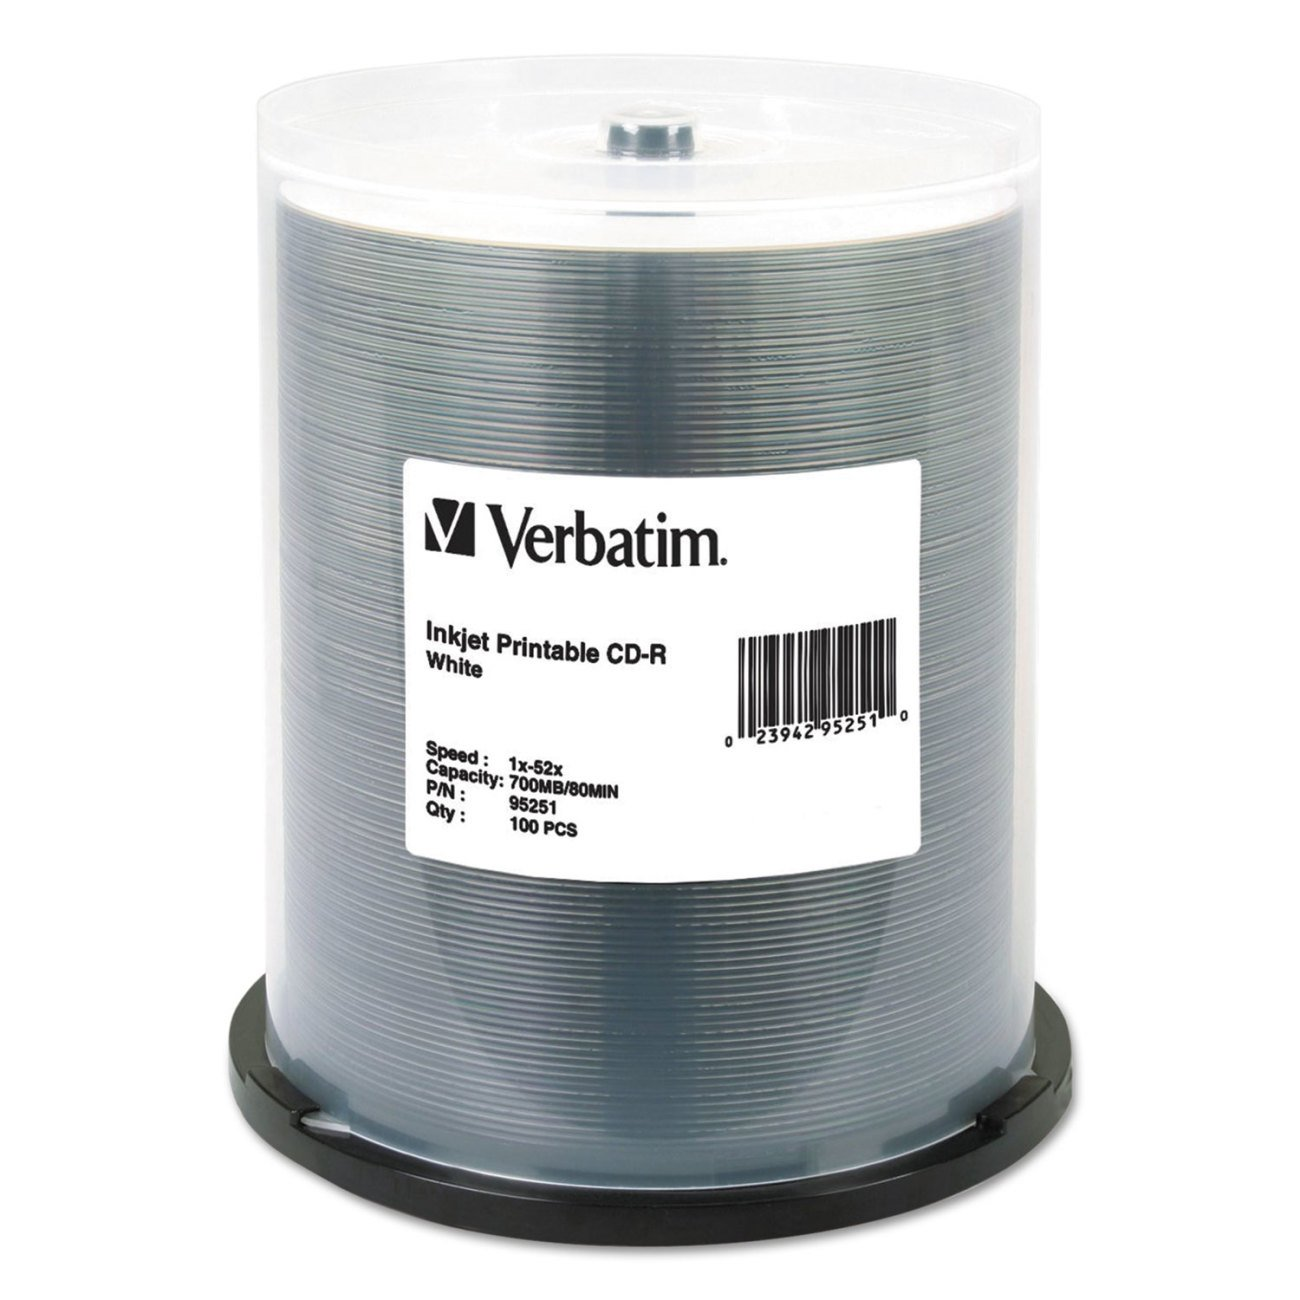 photograph regarding Inkjet Printable Cd named Verbatim CD-R 700MB 52X White Inkjet Printable Recordable Media Disc - 100pk Spindle